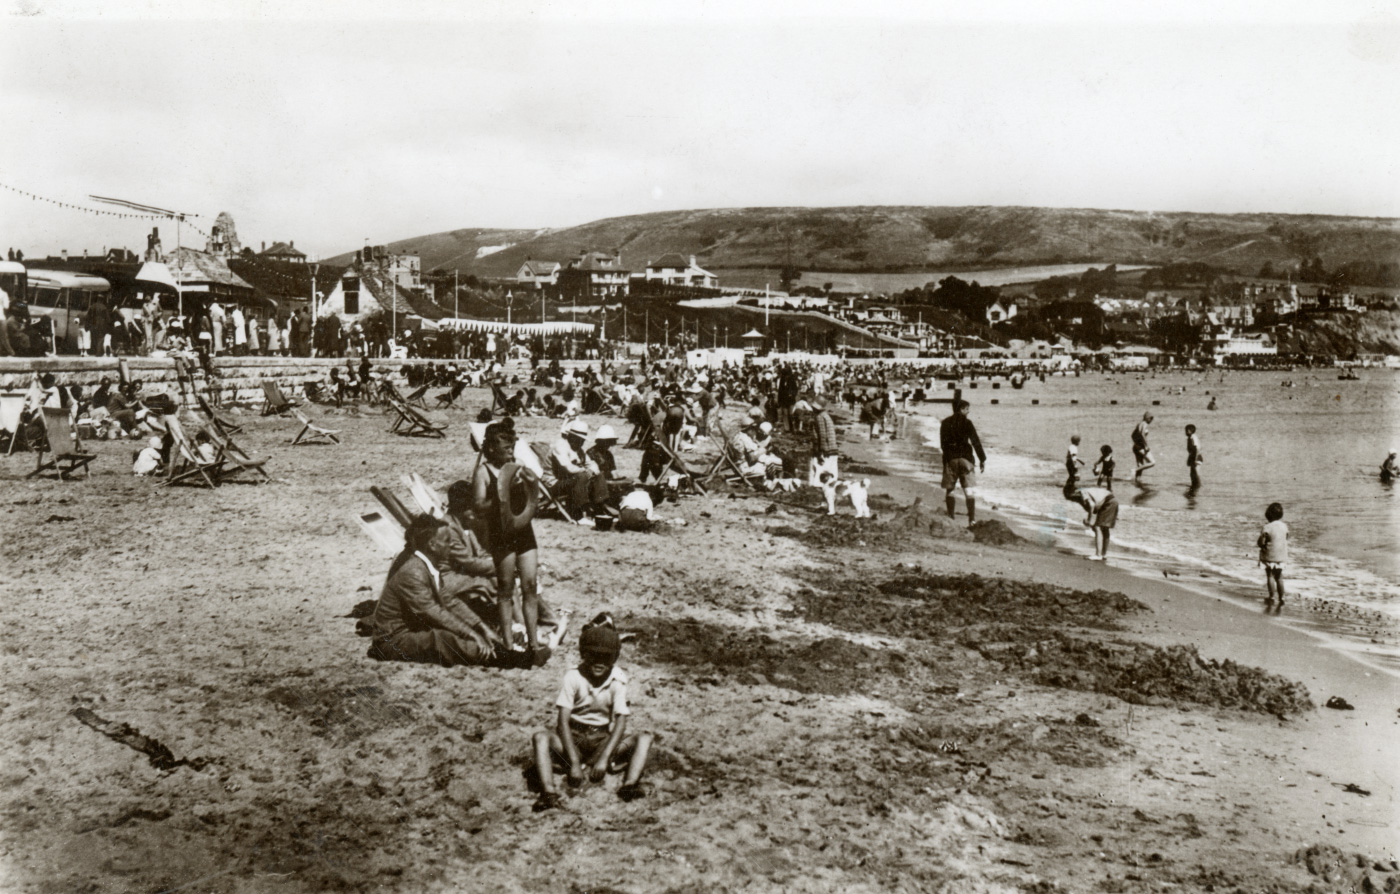 The Sands in 1939